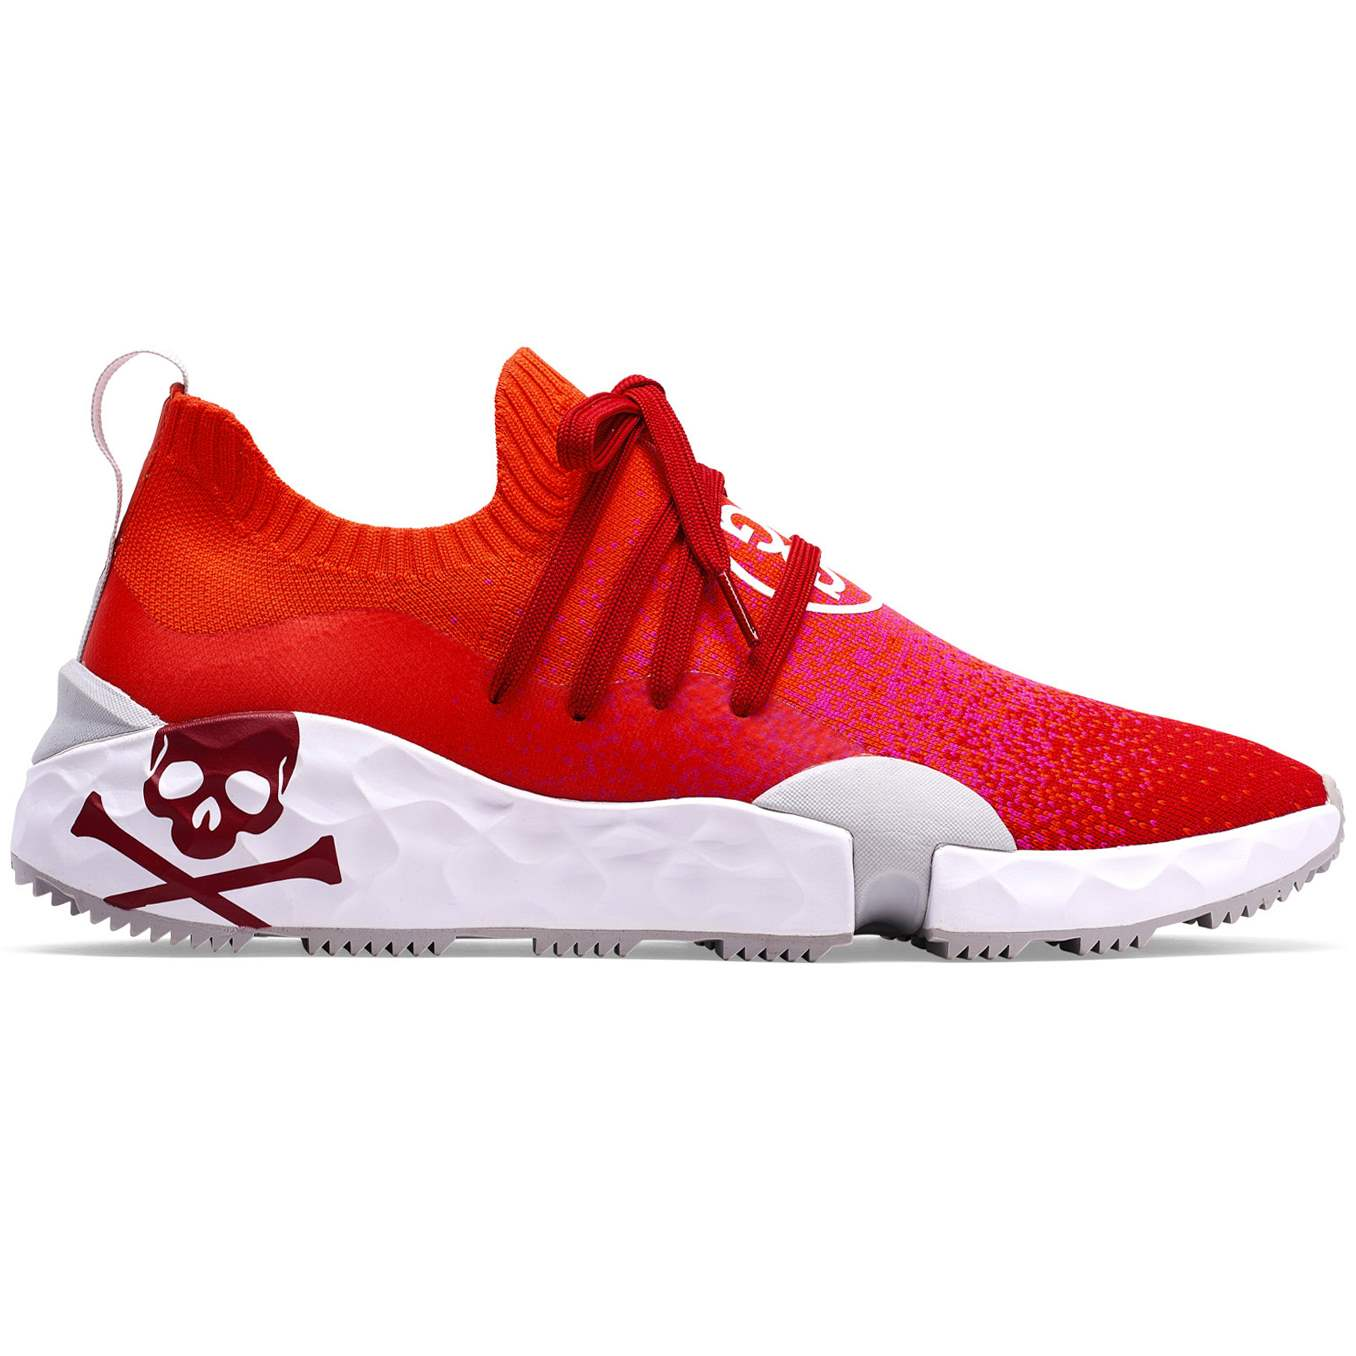 Mens golf special gfore shoes fashion leisure Golf breathable mens shoes G4 comfortable summer shoes